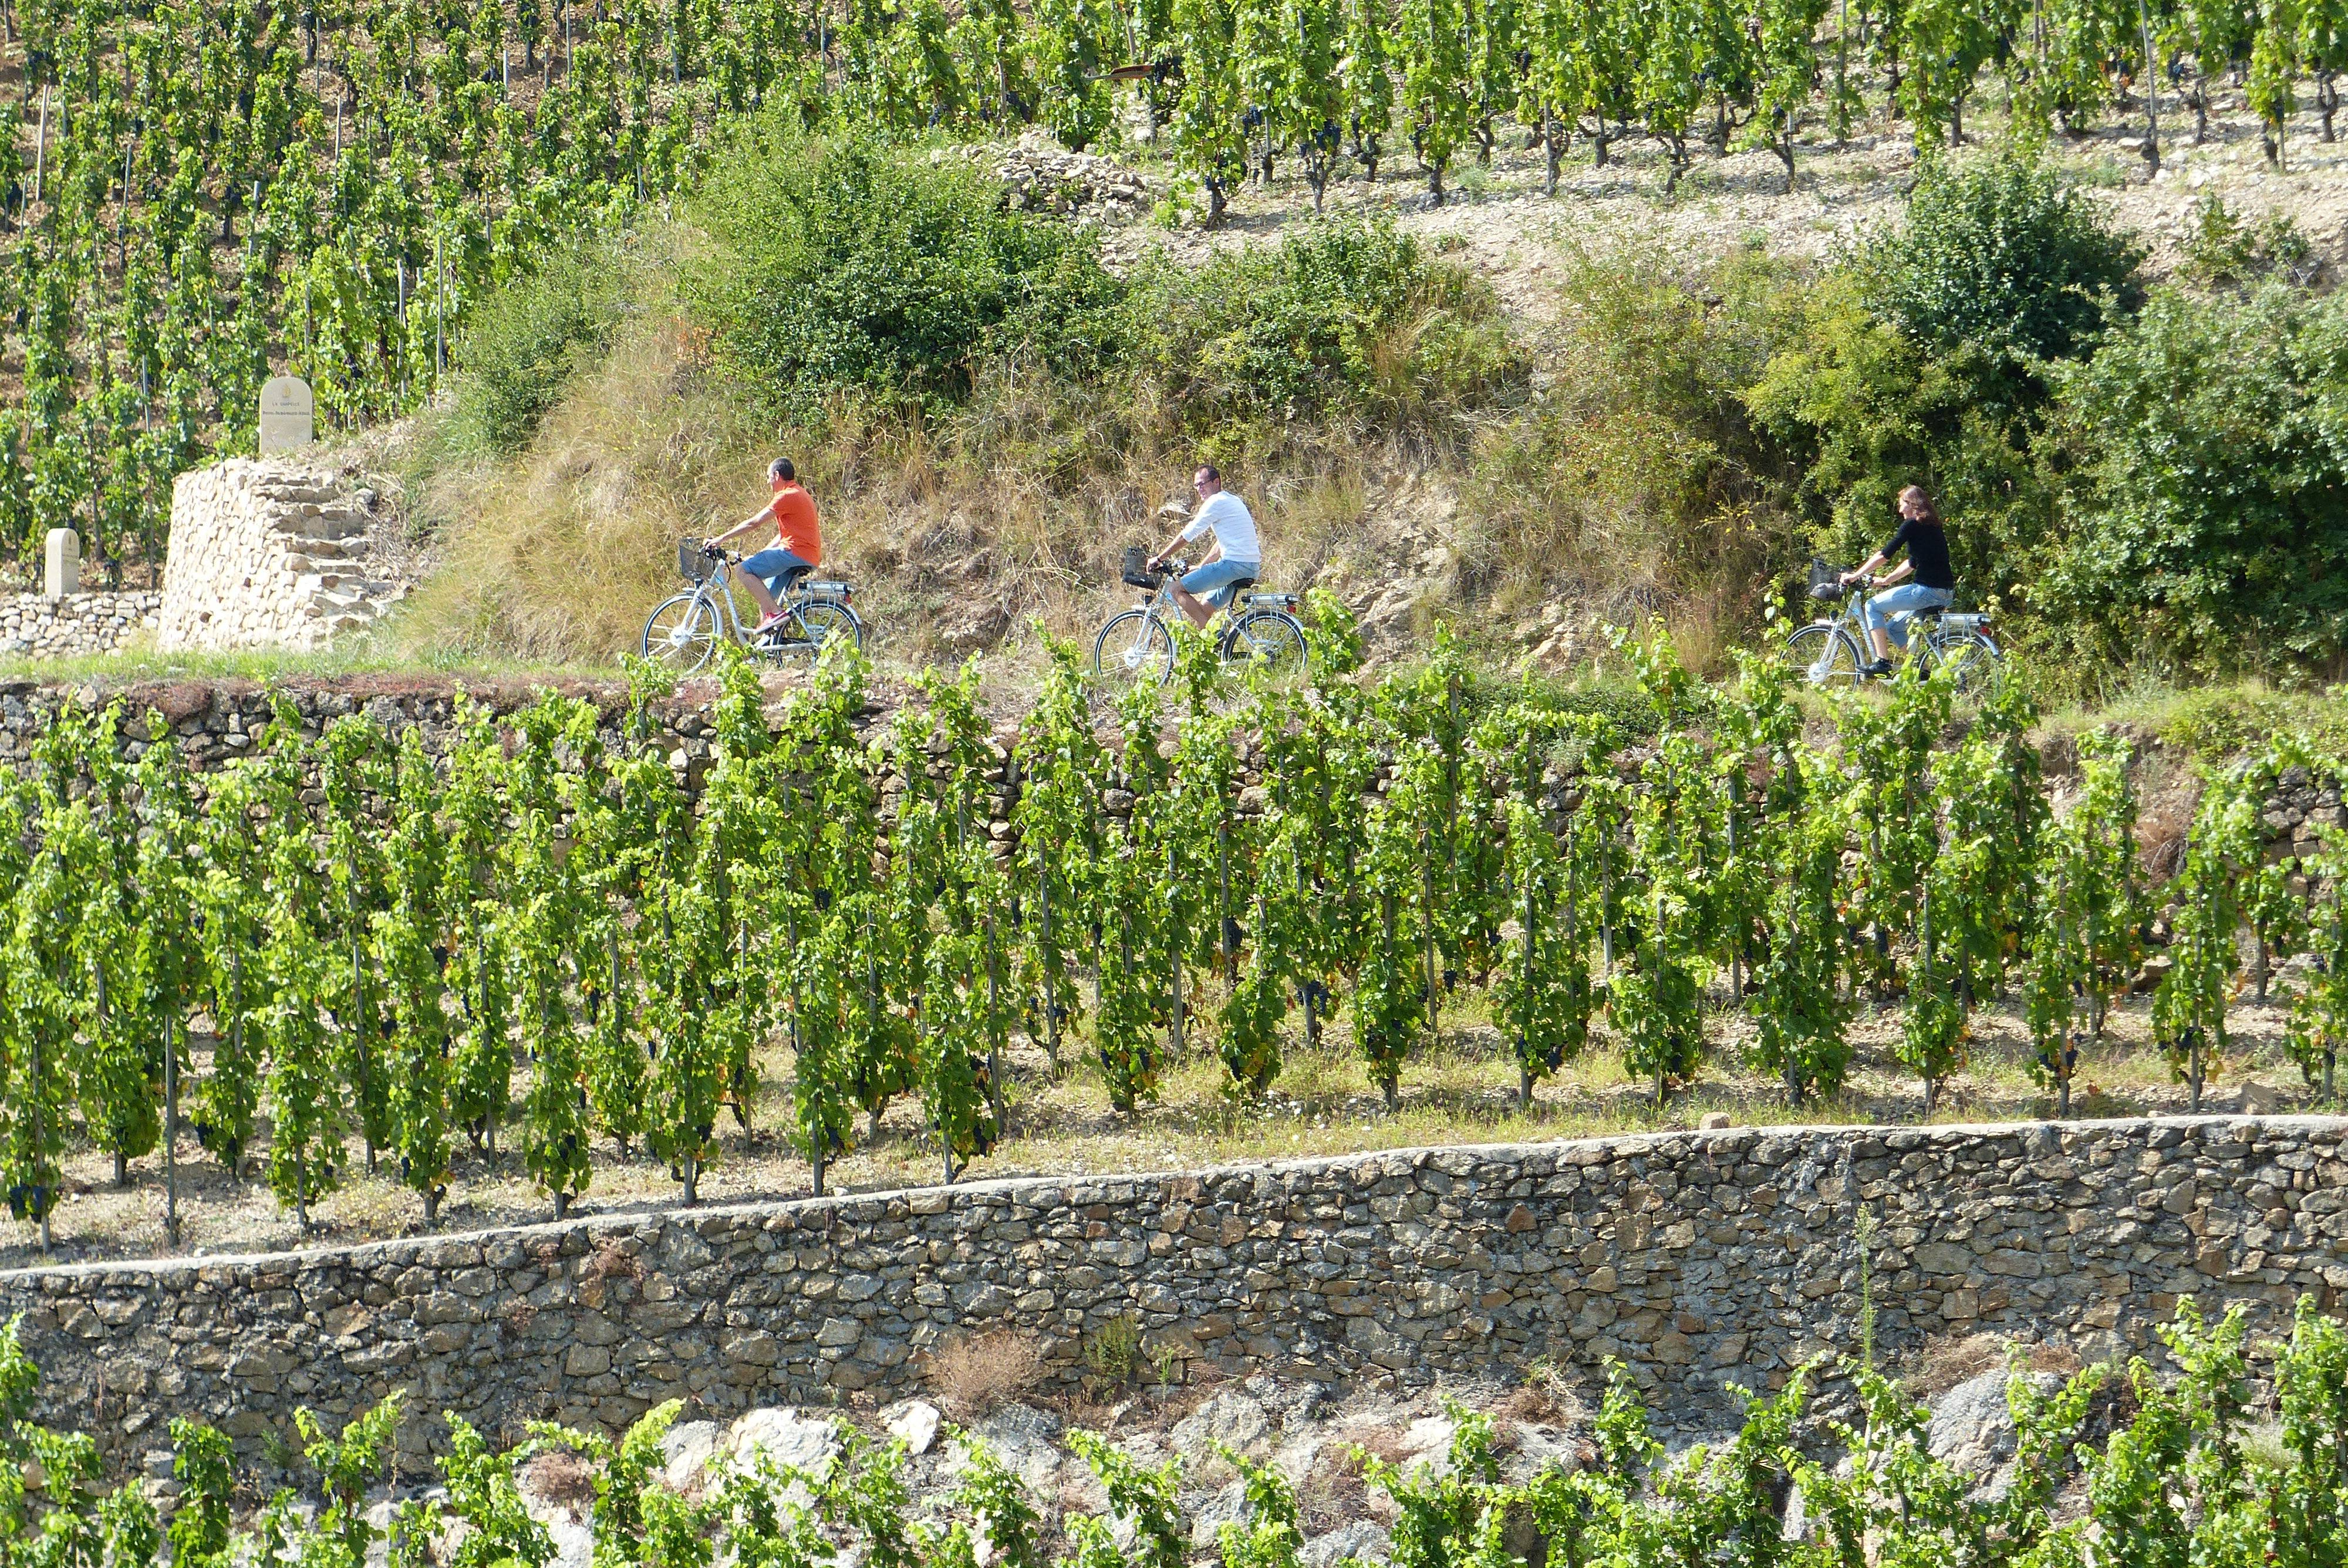 Electrically assisted bicycle in the vineyards